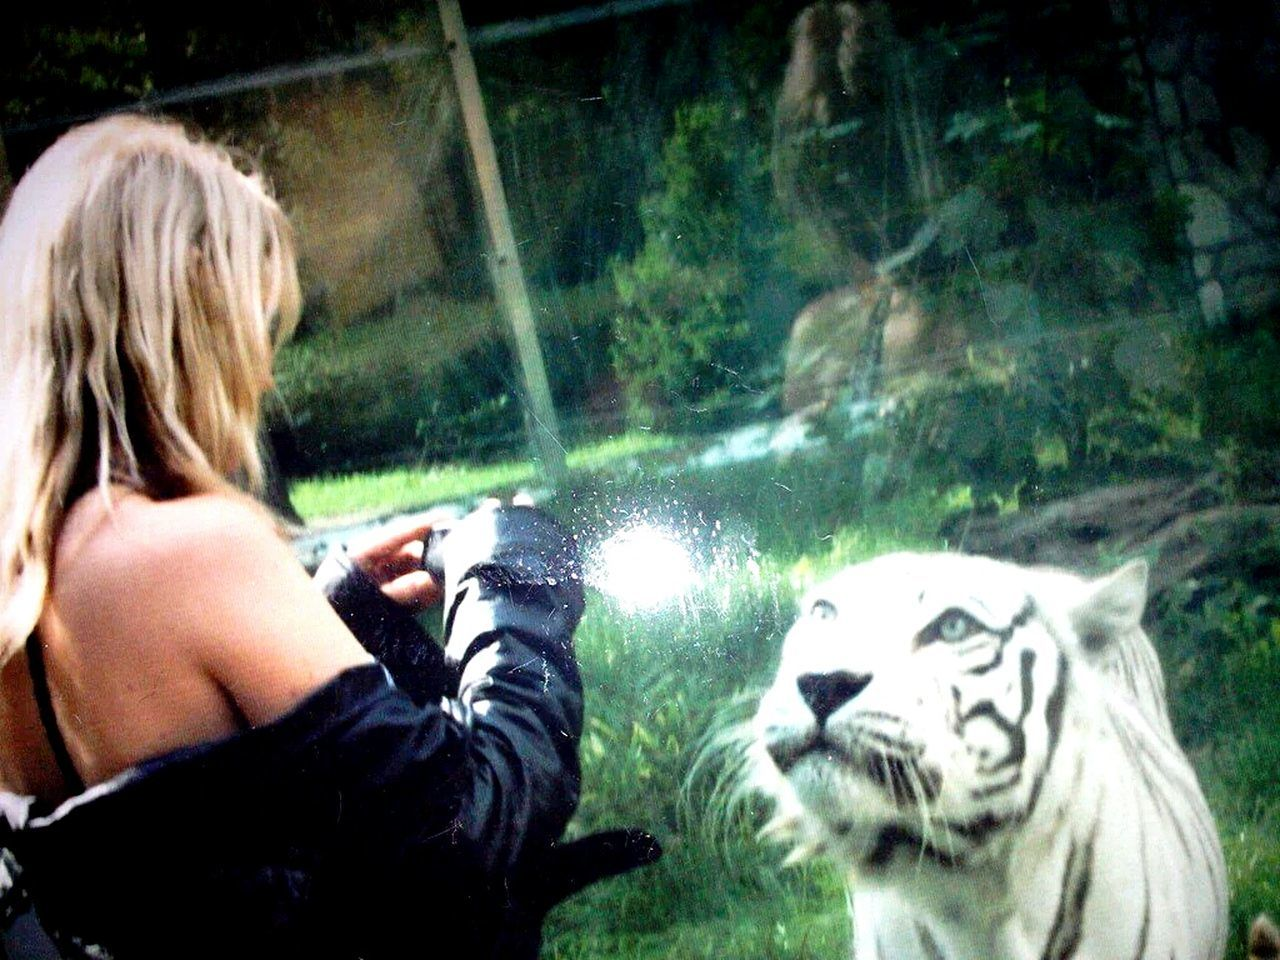 animal themes, one animal, real people, leisure activity, one person, mammal, day, animals in the wild, animal wildlife, pets, outdoors, tiger, water, domestic animals, young adult, people